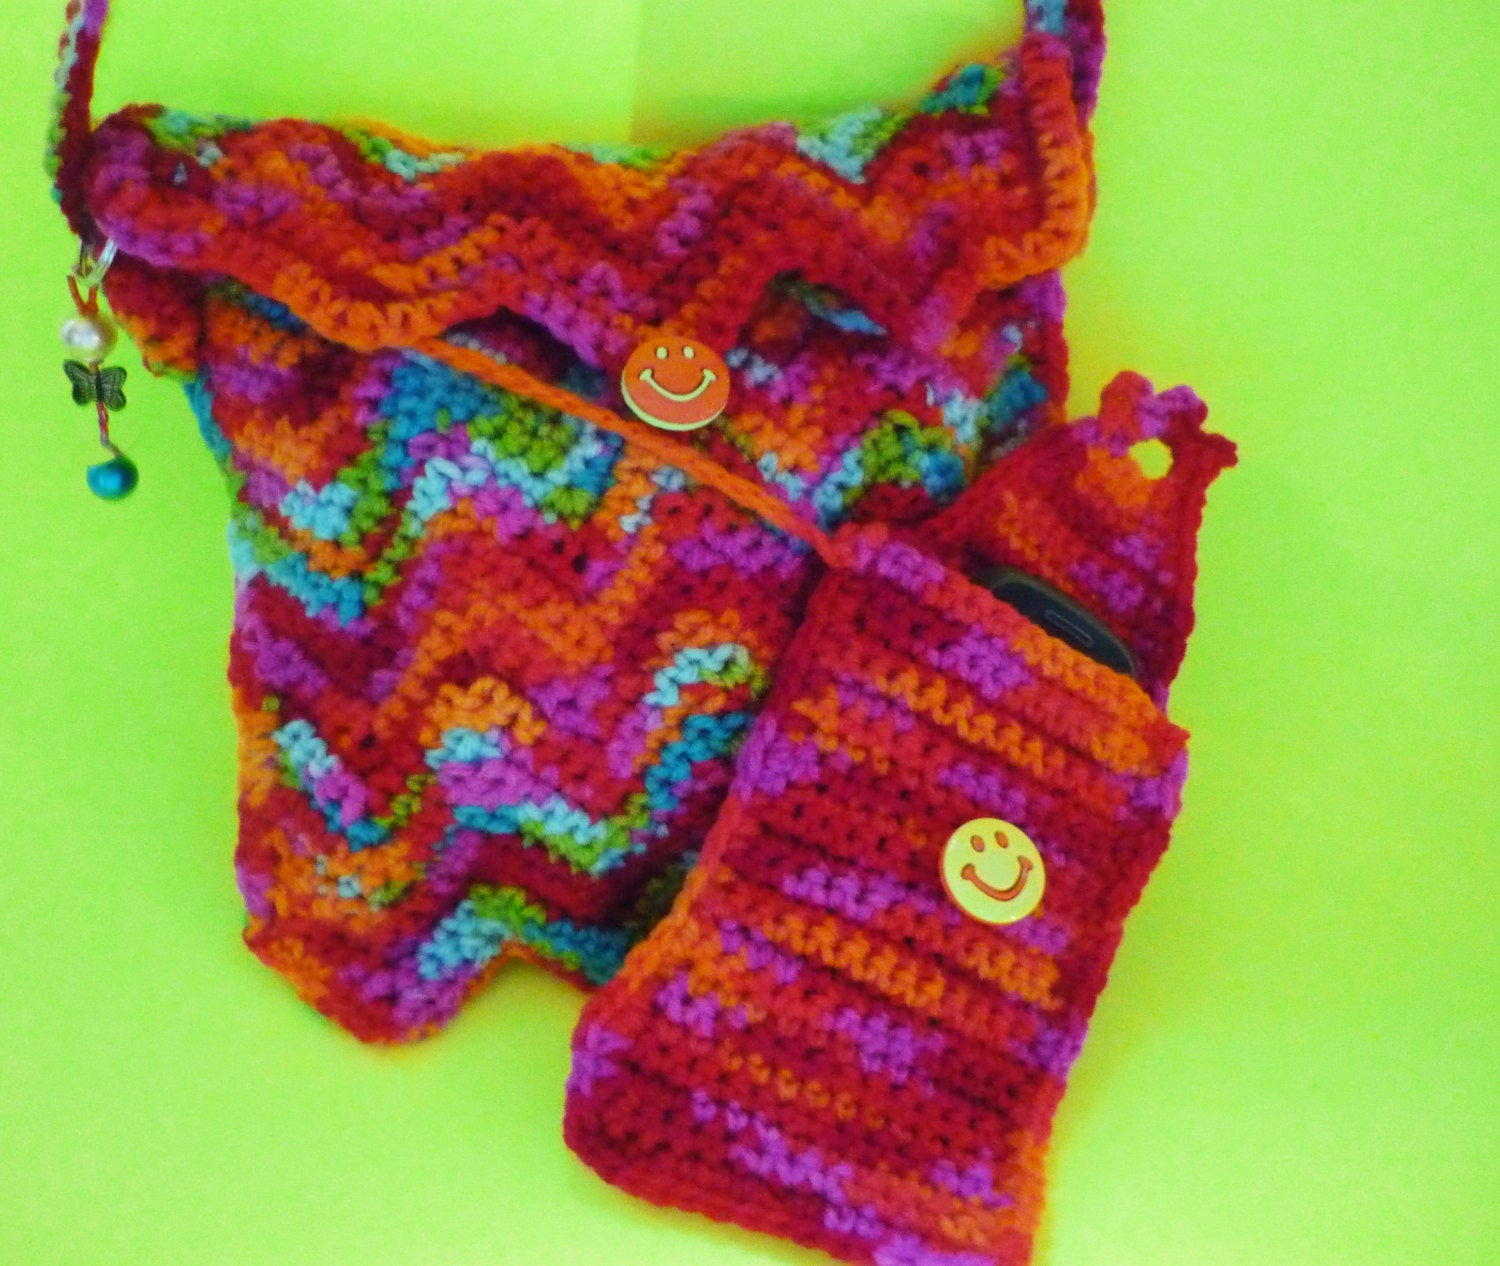 Crochet Rainbow Bag : FREE SHIPPING. Crochet bag in rainbow colors. by Janevadesigns